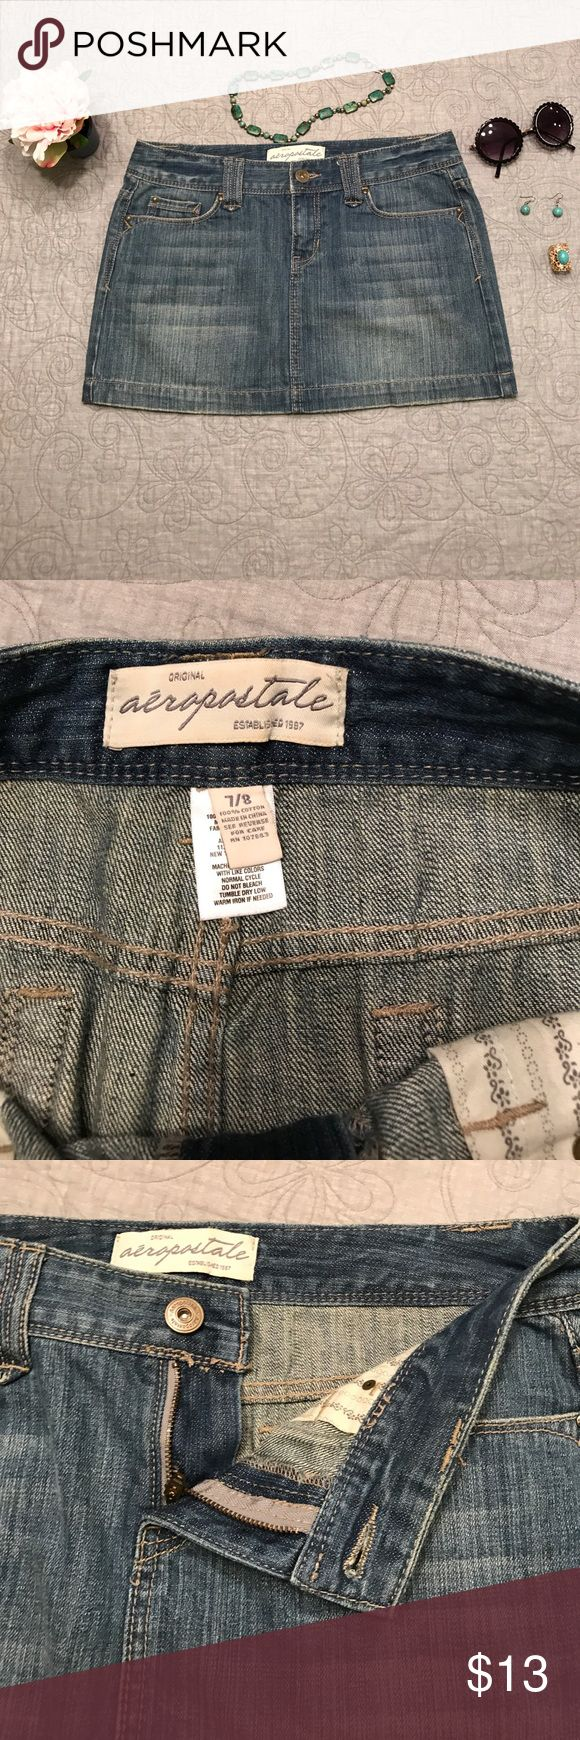 🌺Aeropostale Denim Mini Skirt EUC🌺 Size 7-8. Classic denim mini skirt for all seasons. Show off your legs in the summer or Pair with tights or leggings in cooler weather All reasonable offers considered. 🌺 Aeropostale Skirts Mini